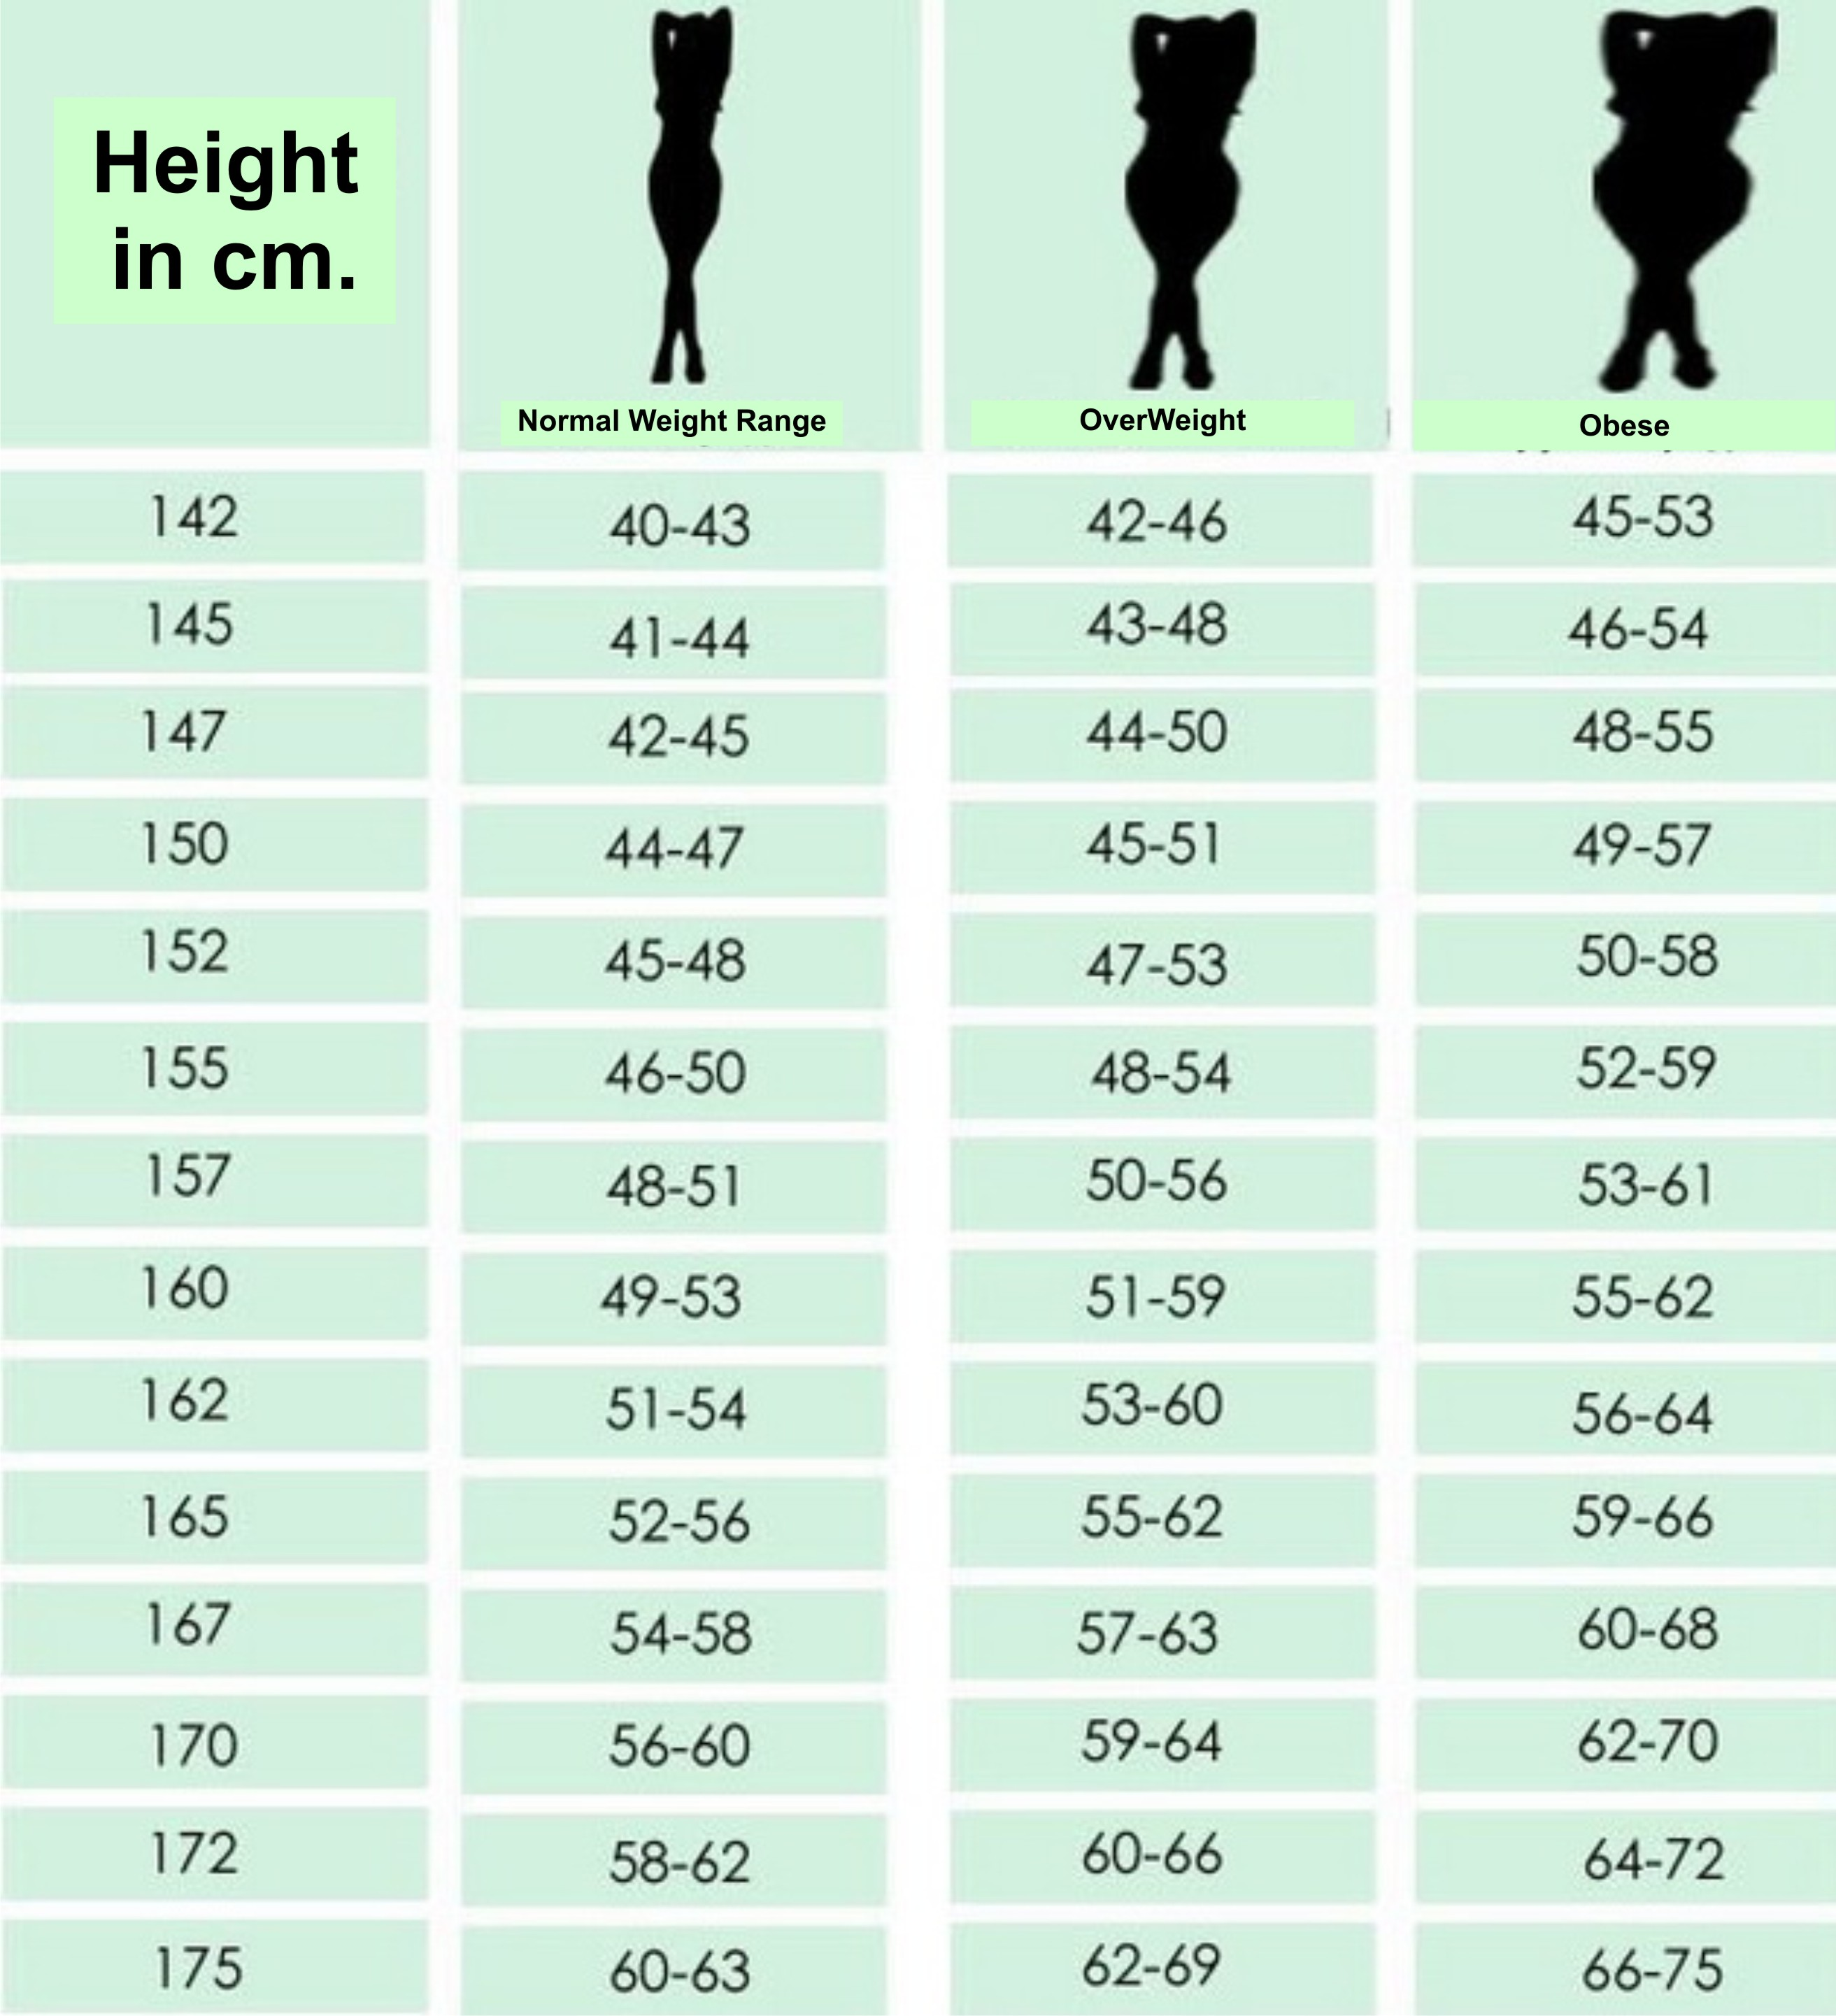 The table allows you to fast and easily convert most common human heights between values given in feet and inches, inches and centimeters. There is no column for hight given in meters because conversion from centimeters .